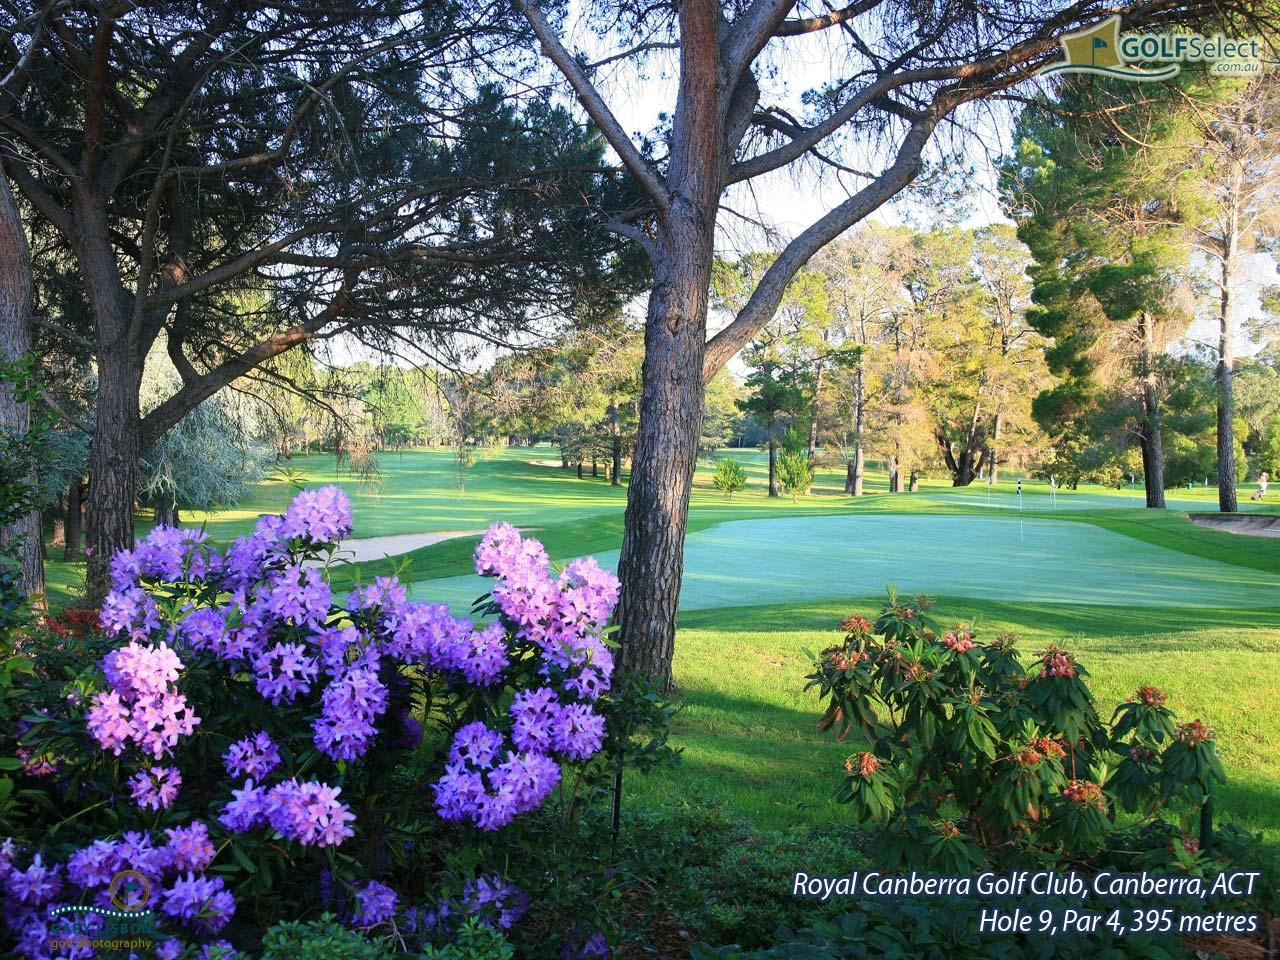 Royal Canberra Golf Club- Westbourne Course  Hole 9, Par 4, 395 metres